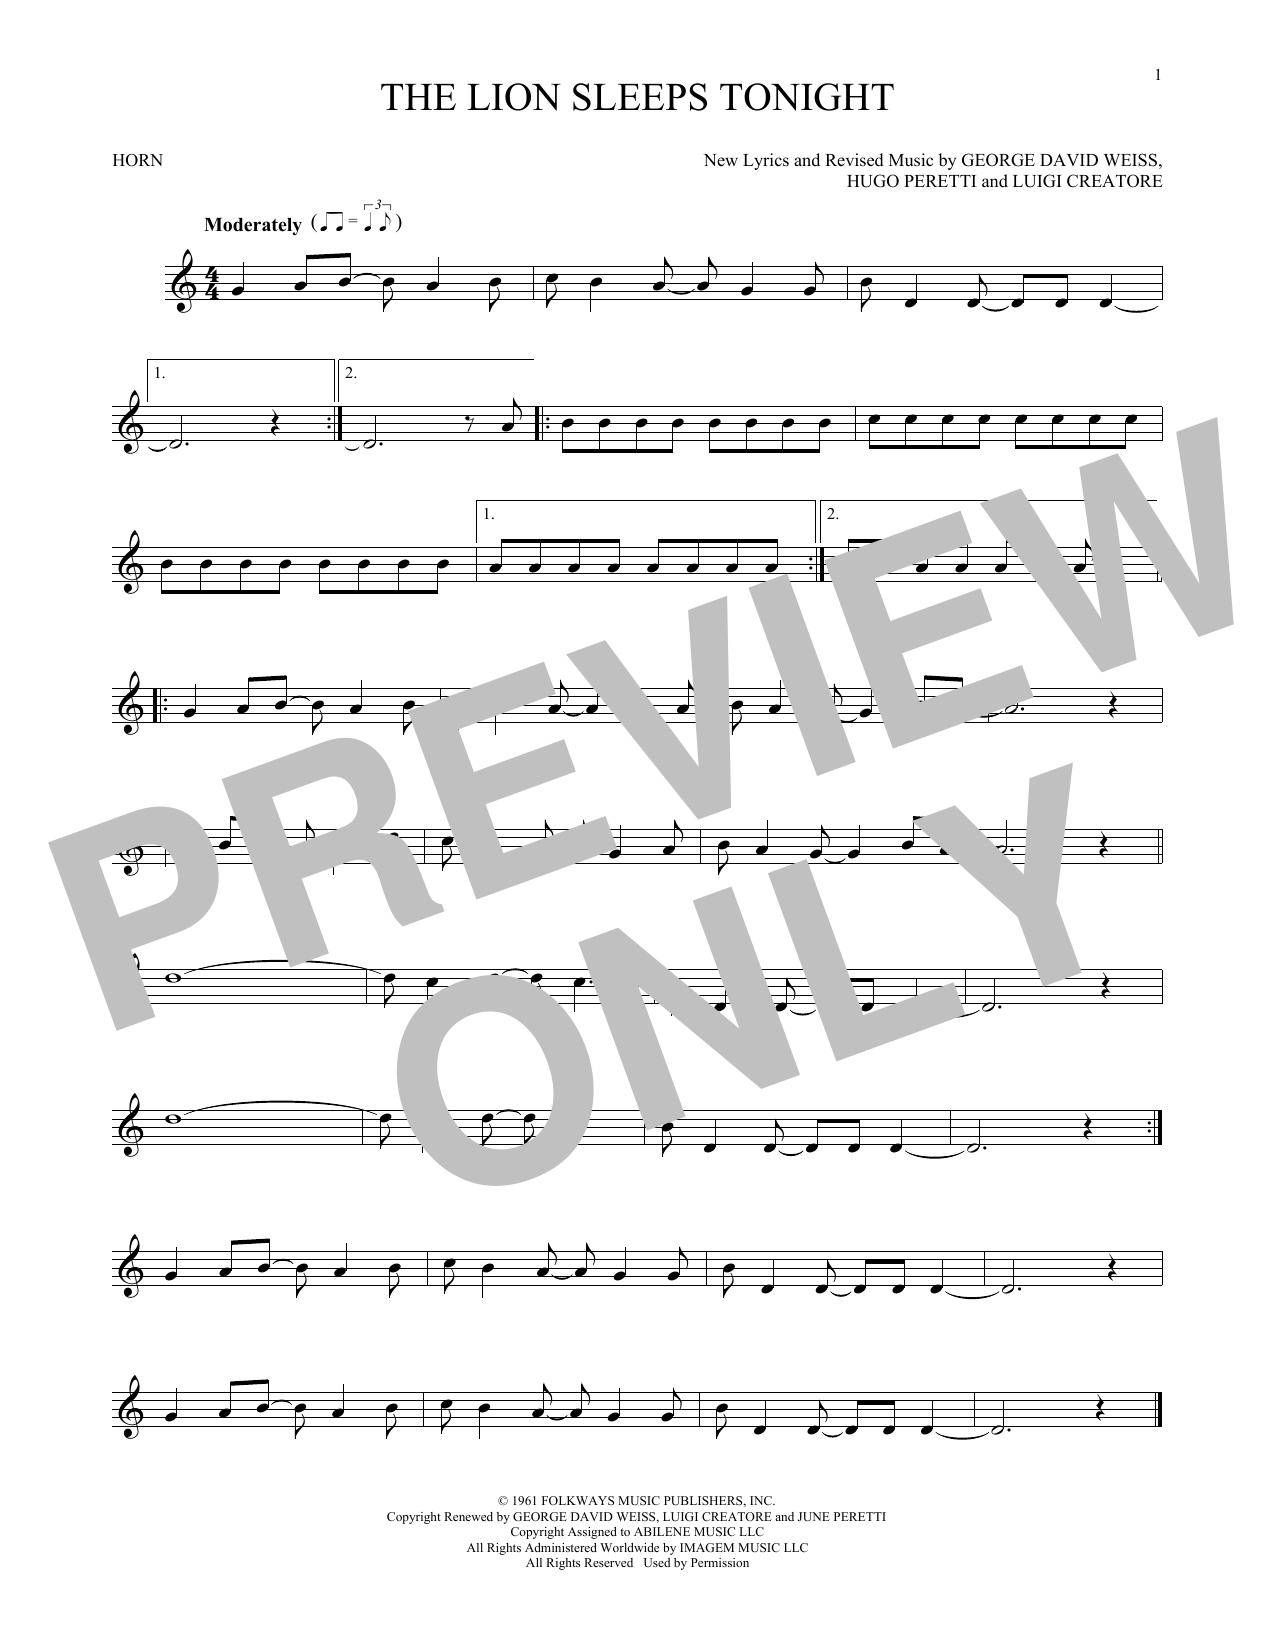 The Lion Sleeps Tonight (French Horn Solo)